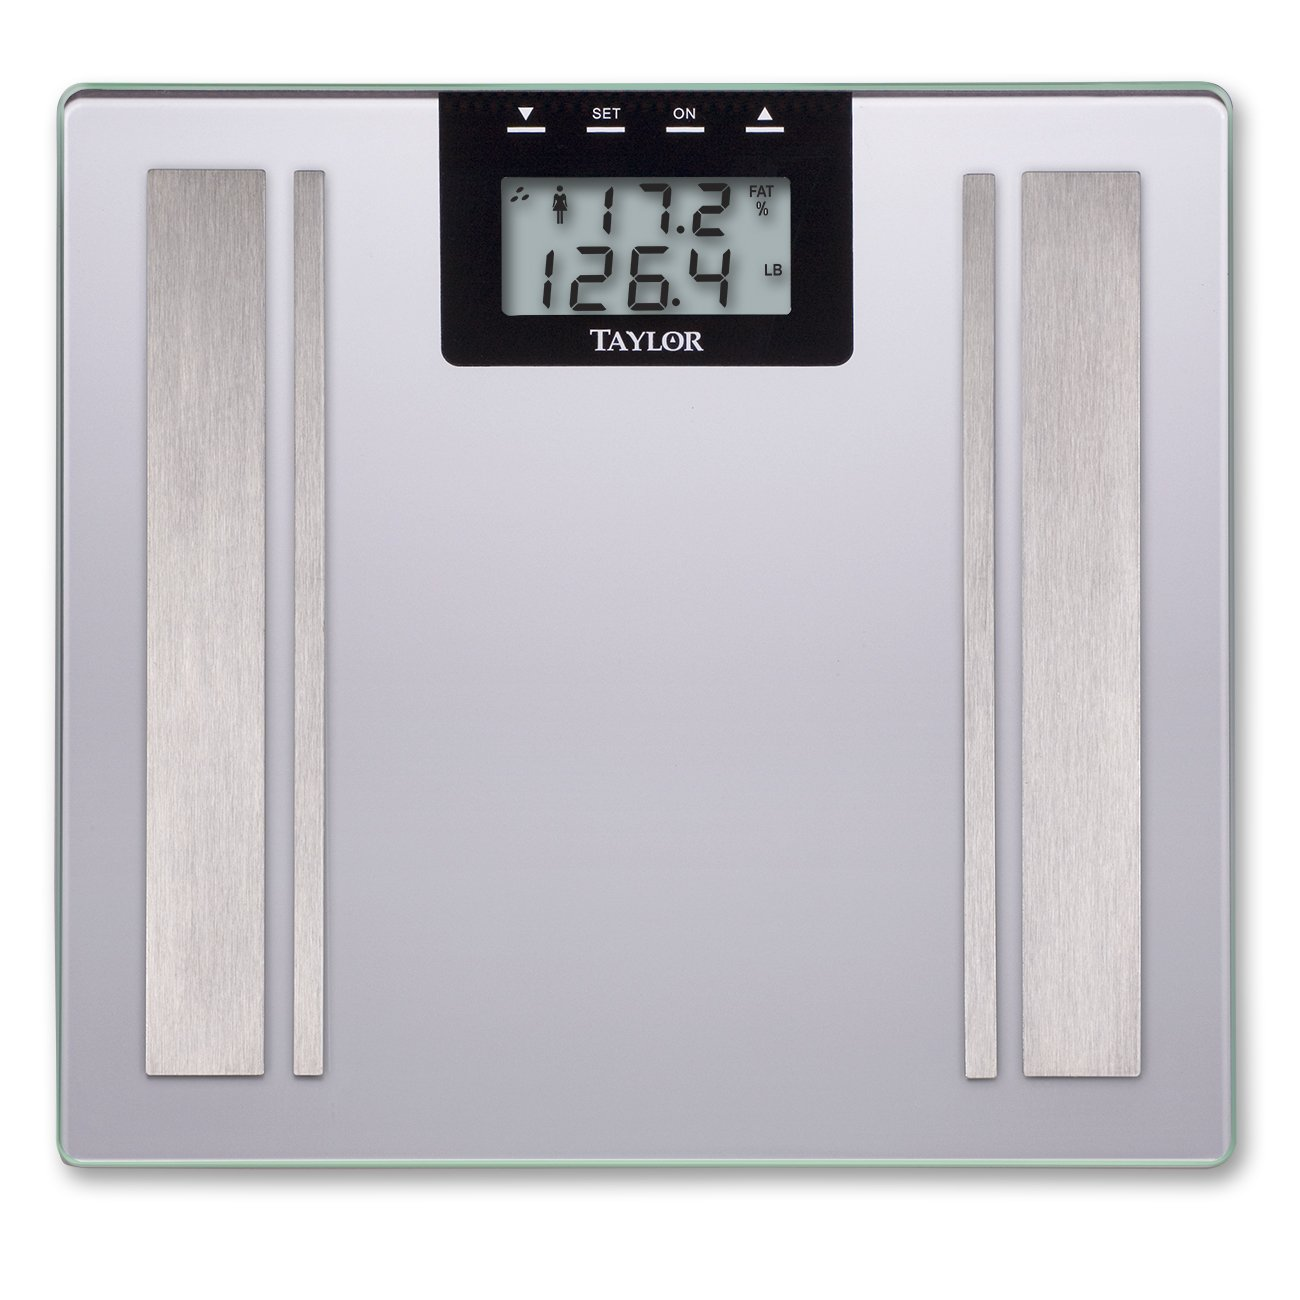 Taylor Precision Products Digital Body Fat Analyzer Scale by Taylor Precision Products